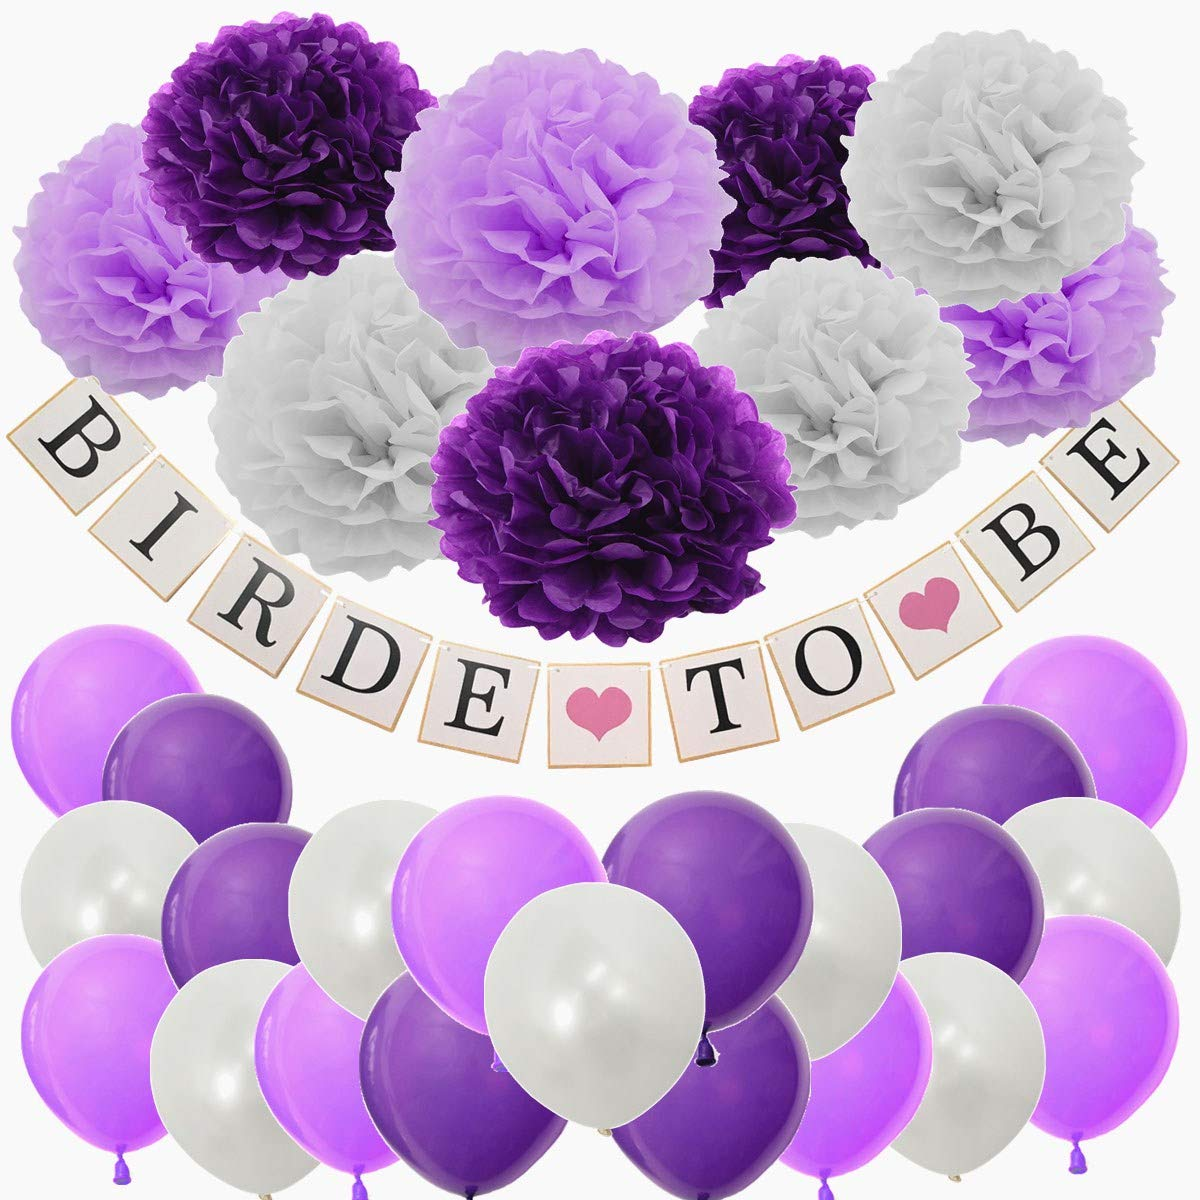 41PCS Purple Bride to BE Bridal Shower Bachelotte Party Decoration Set Wedding Decoration Supply Kit Bride to BE Banner 12 Latex Balloon Tissue Paper Pom Pom